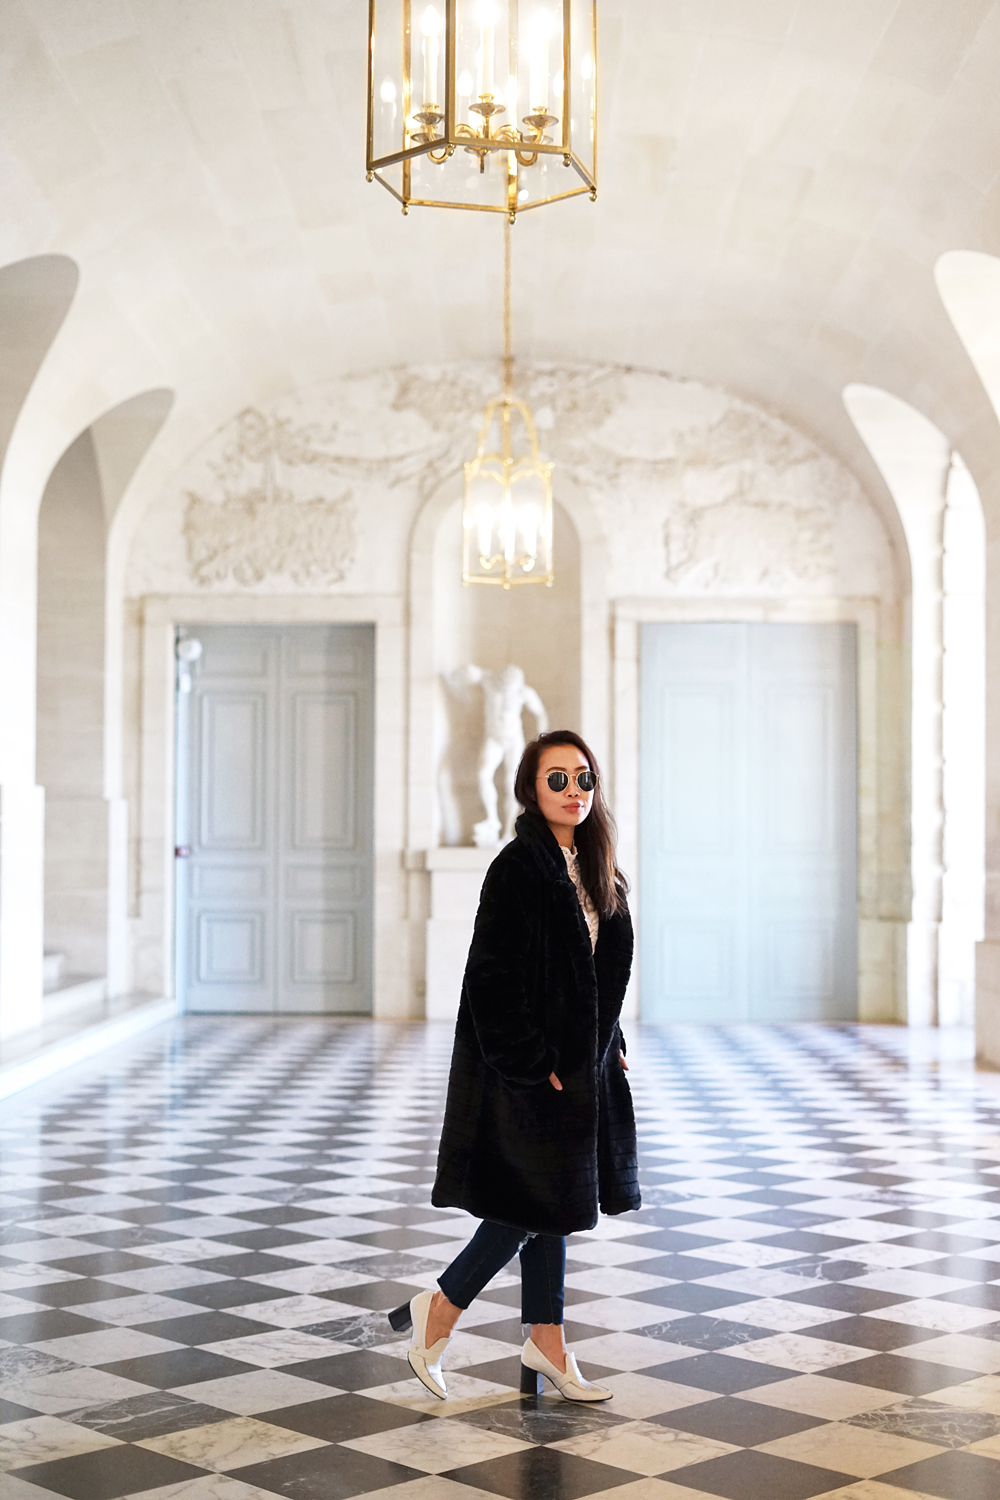 07chateau-versailles-france-travel-style-ootd